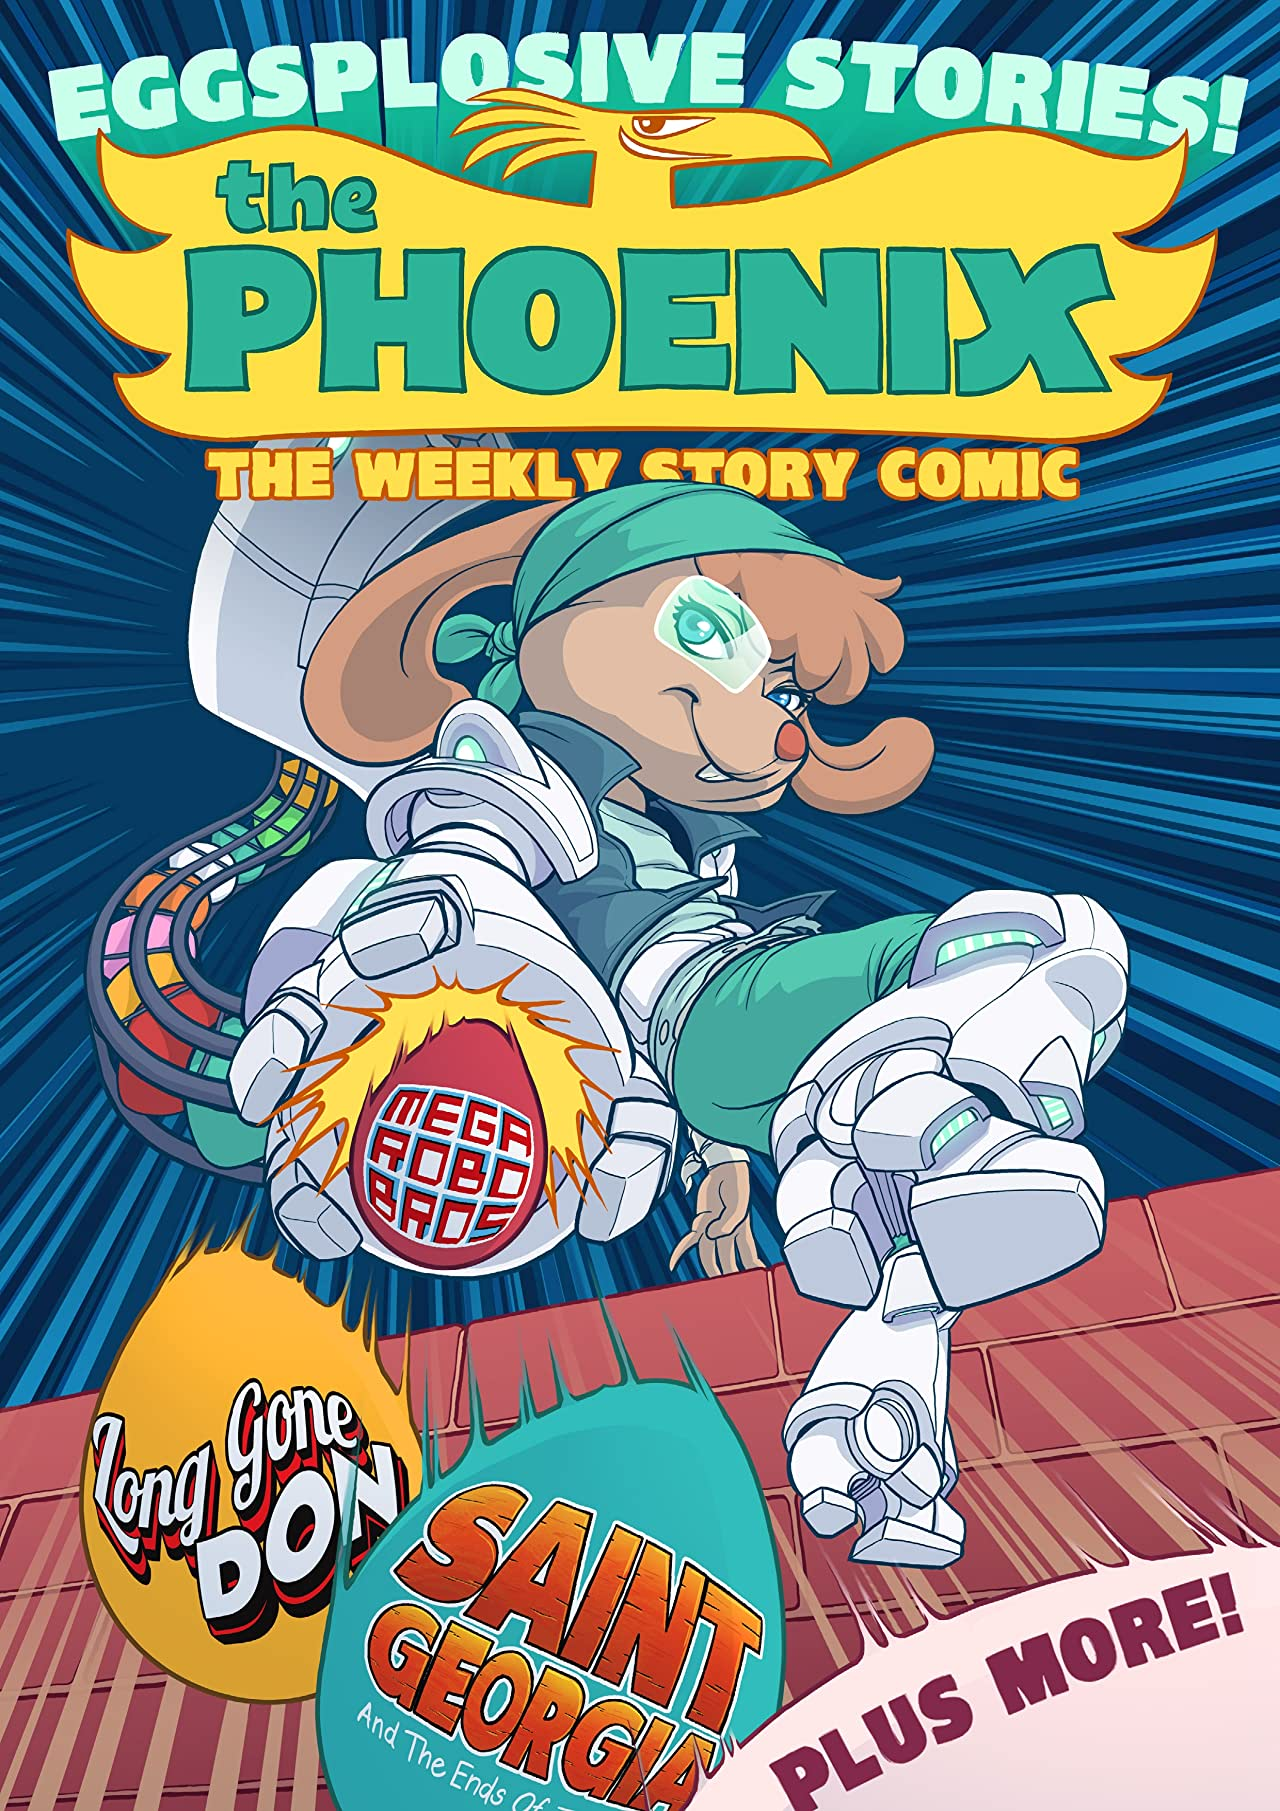 The Phoenix #221: The Weekly Story Comic